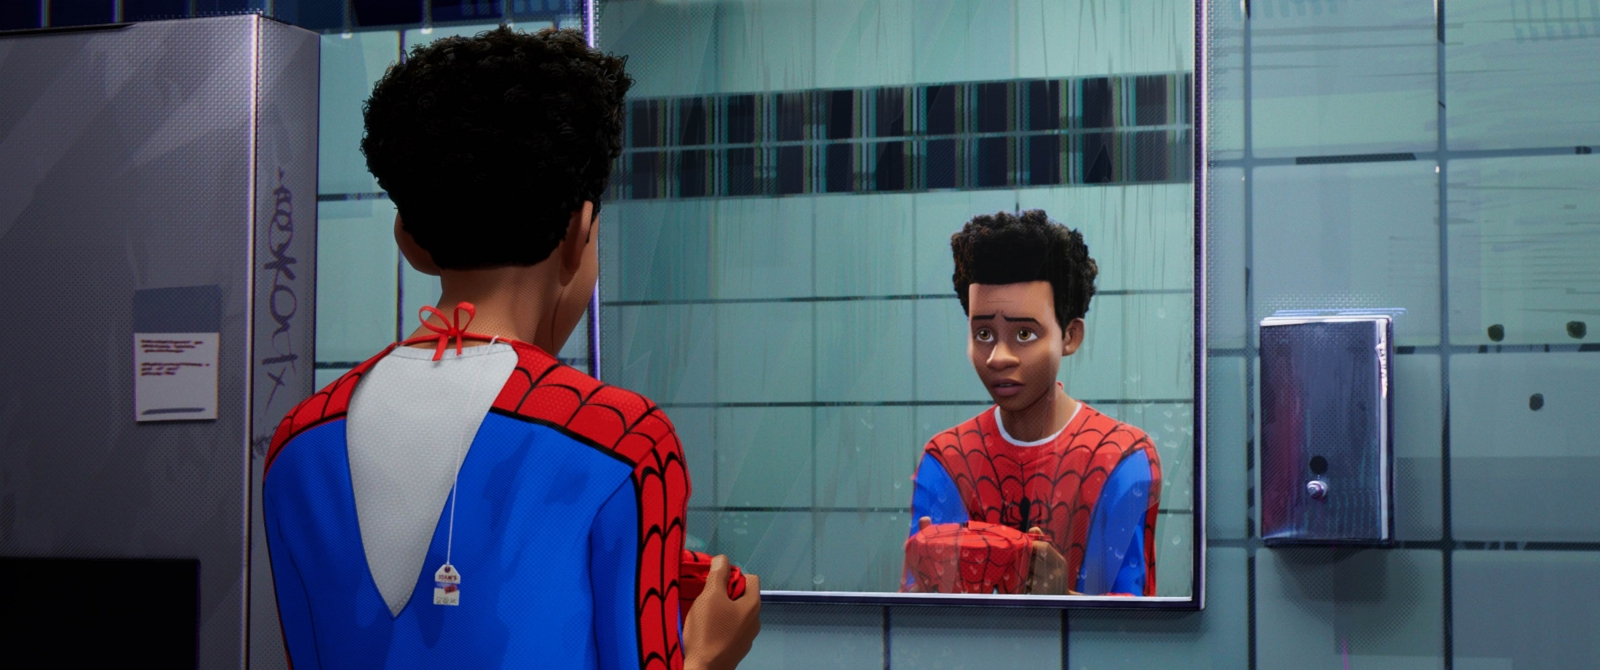 A shot of character Miles Morales staring at himself in the mirror, holding the Spiderman mask, in Spiderman: Into the Spider-Verse.